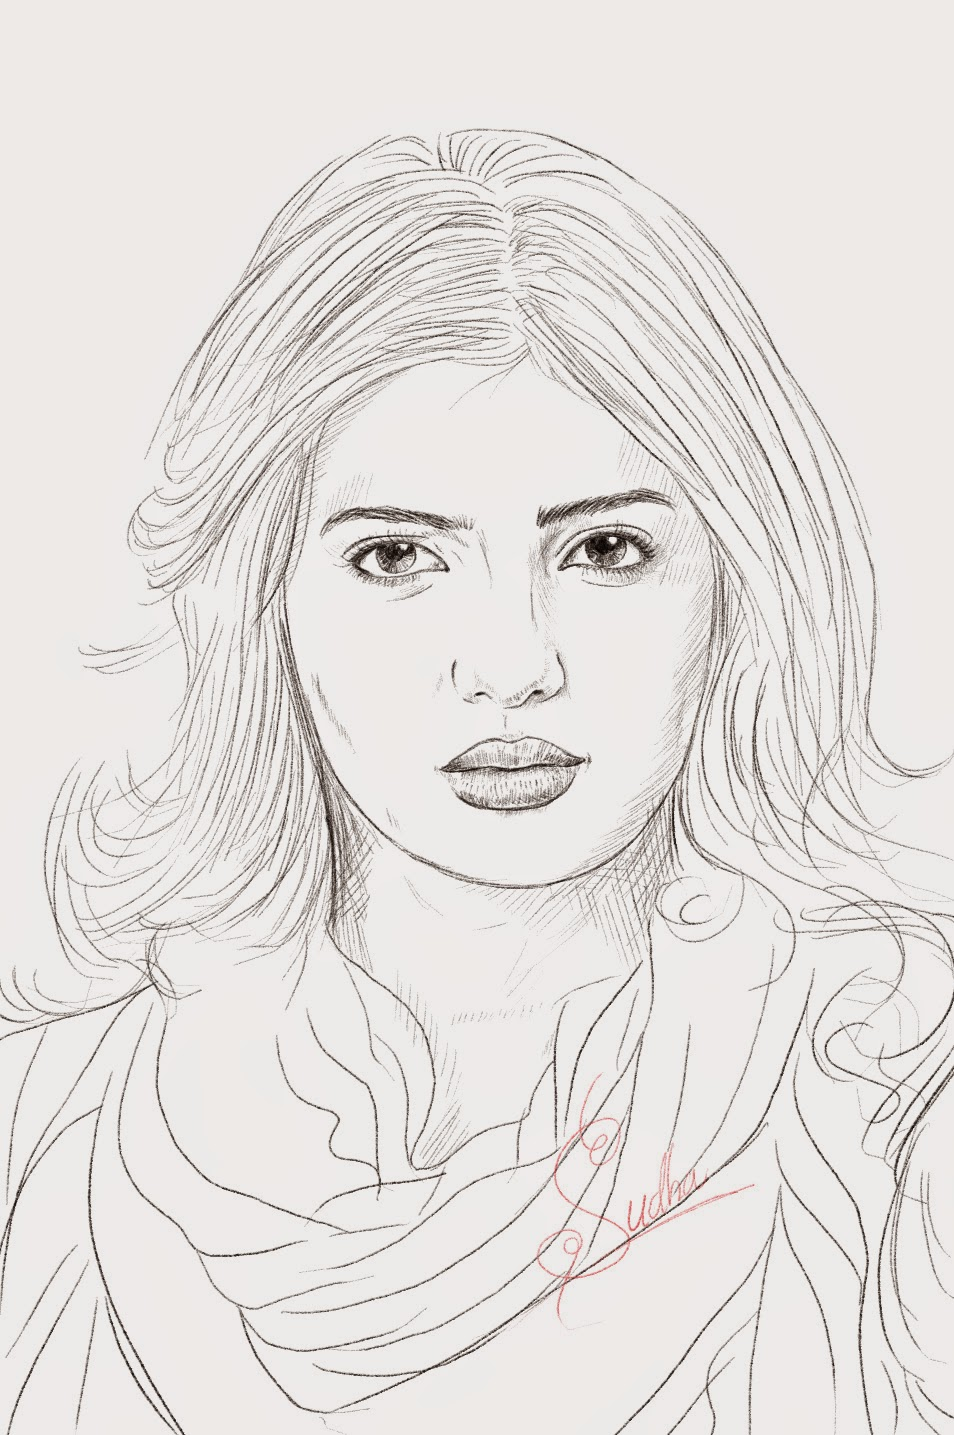 Free Coloring Pages Download How To Draw And Color Videos Samantha Portrait Drawing Beautiful Indian Actress Pencil Art Work